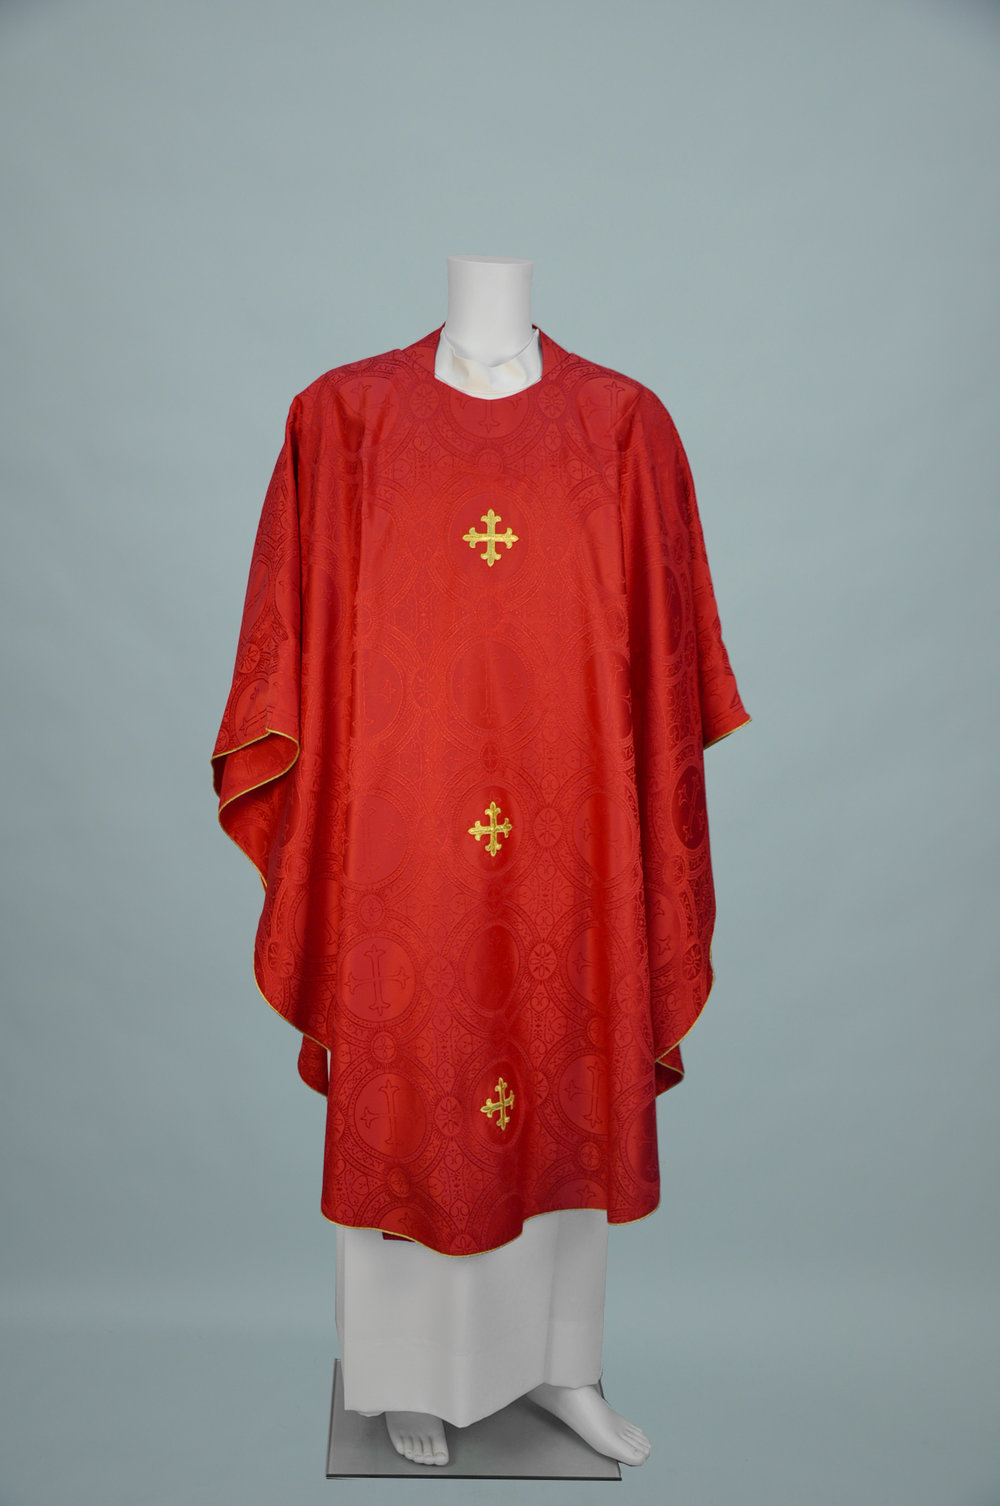 Gothic Chasuble 2930 Red W 3in Gold Crosses.jpg